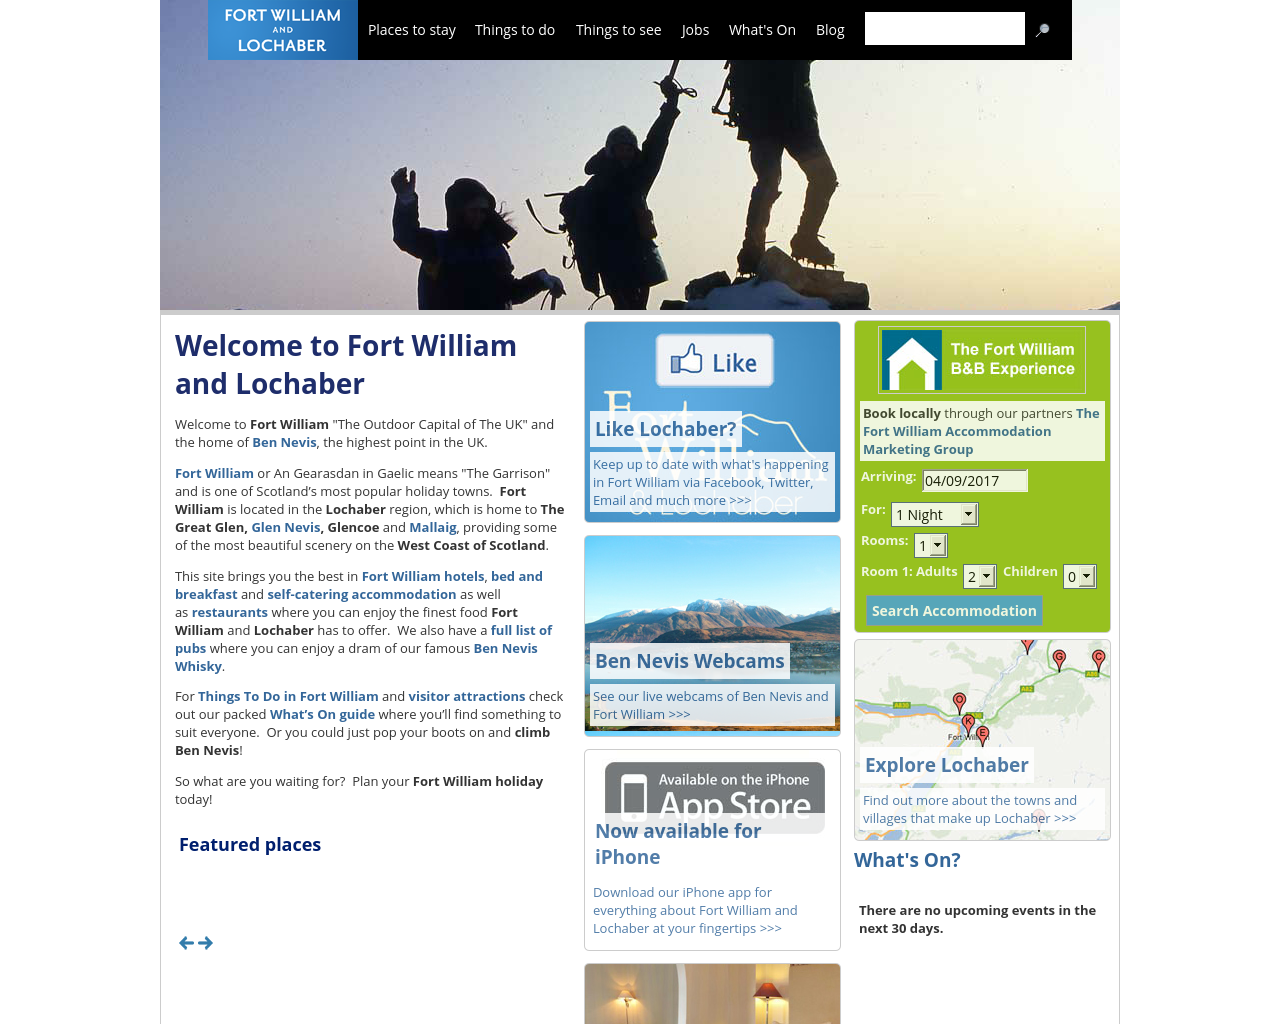 FORT-WILLIAM-AND-LOCHABER-Advertising-Reviews-Pricing